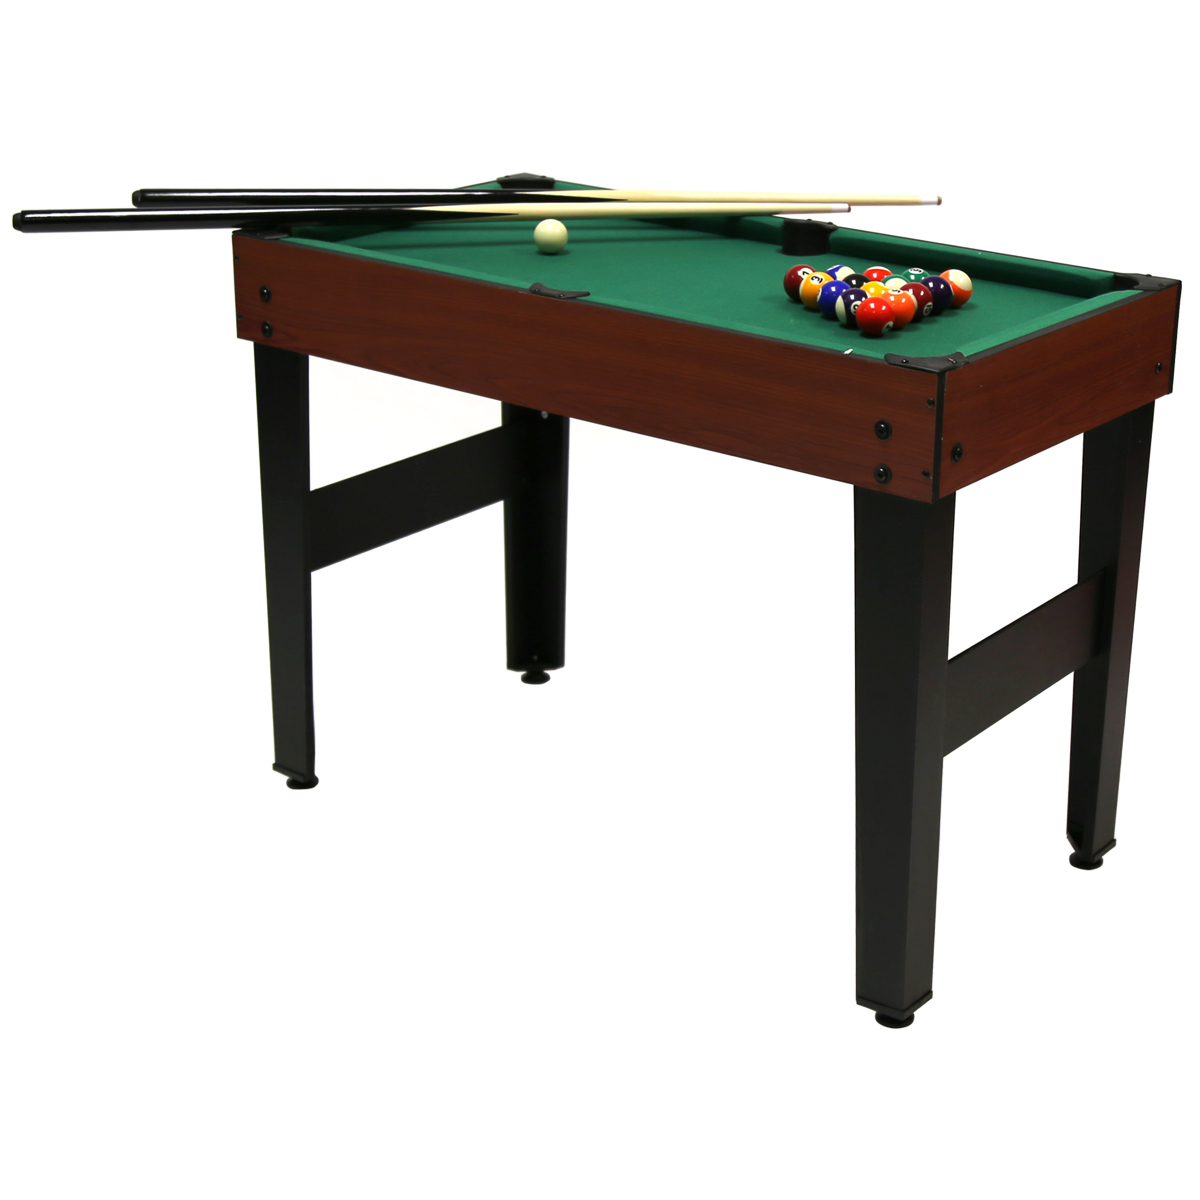 4 in 1 multi sports table including pool football push for Table 4 en 1